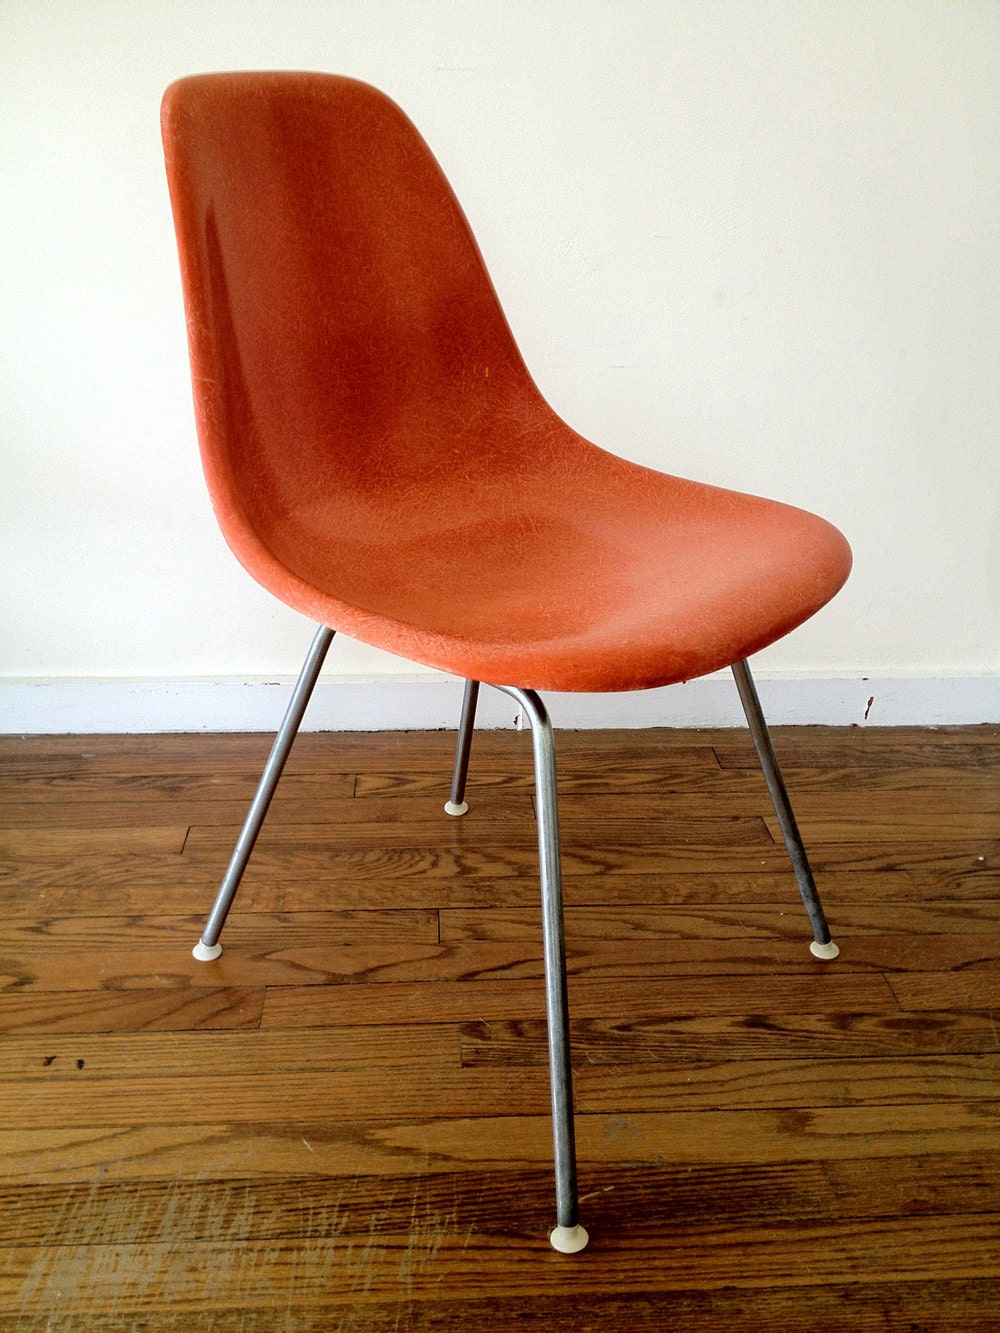 Herman miller eames shell chair with h base - Eames chair herman miller ...